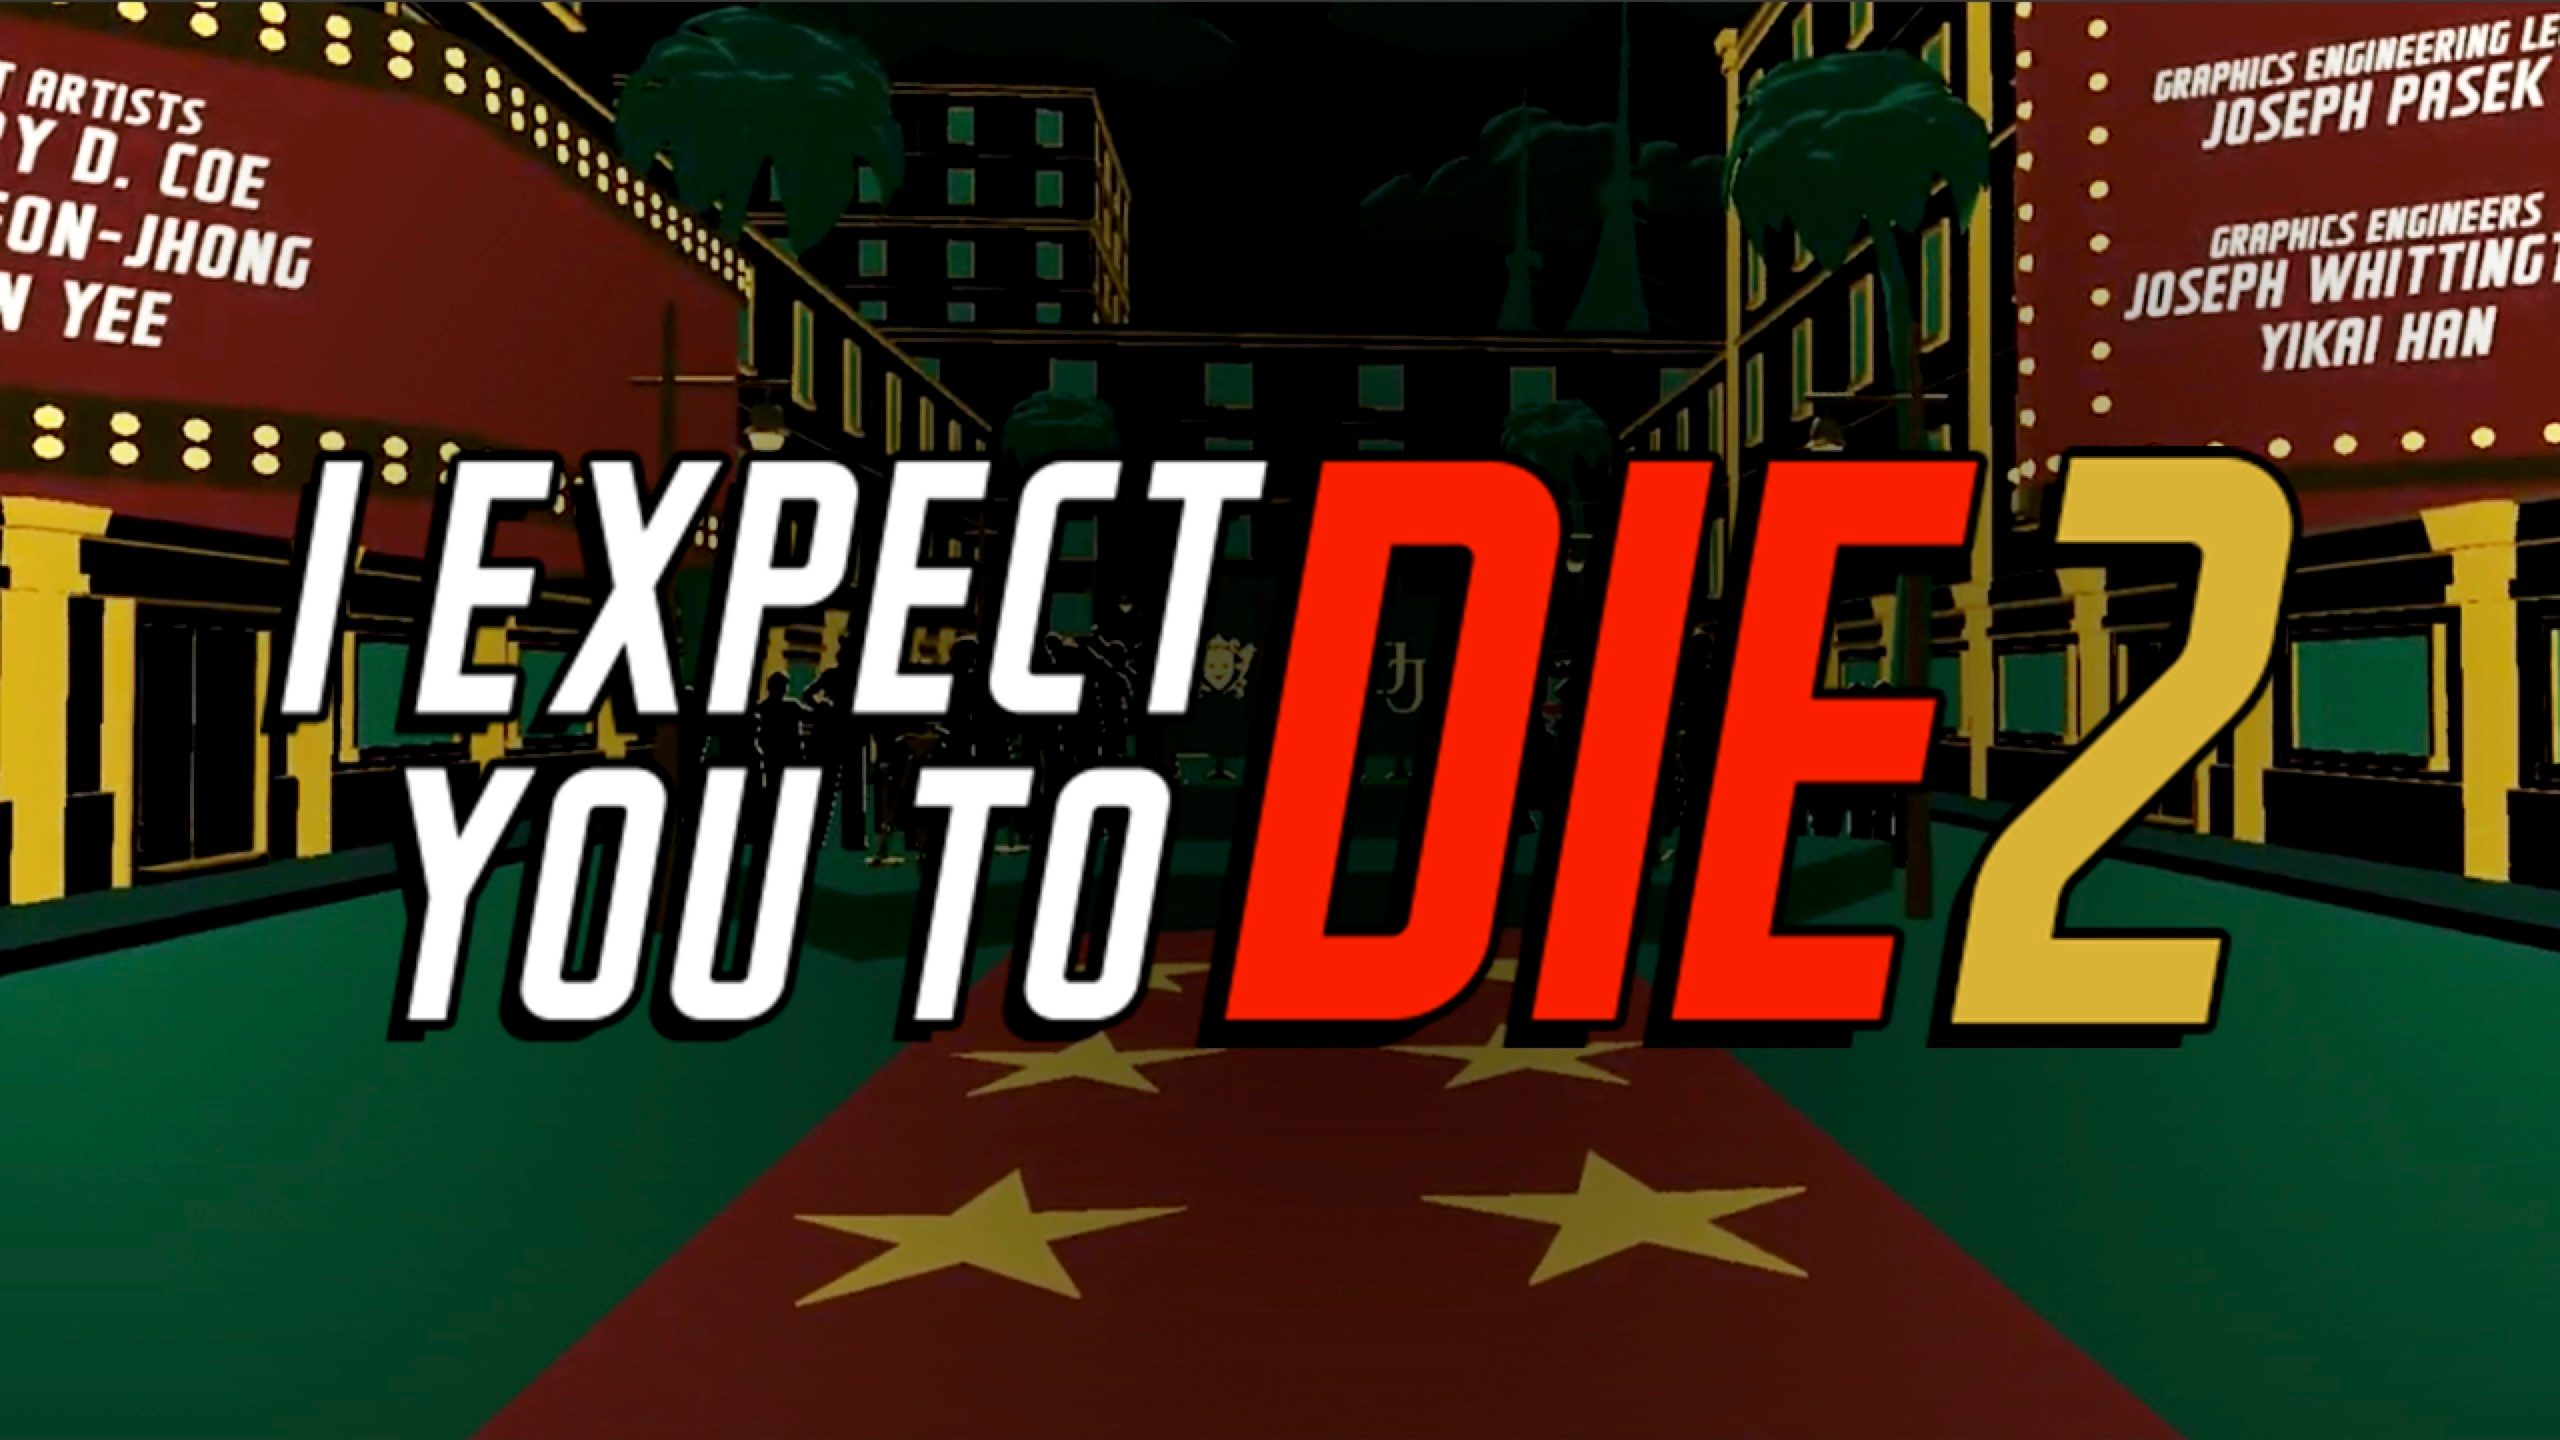 I Expect You To Die 2: PS VR follow-up gets an August 24 release date